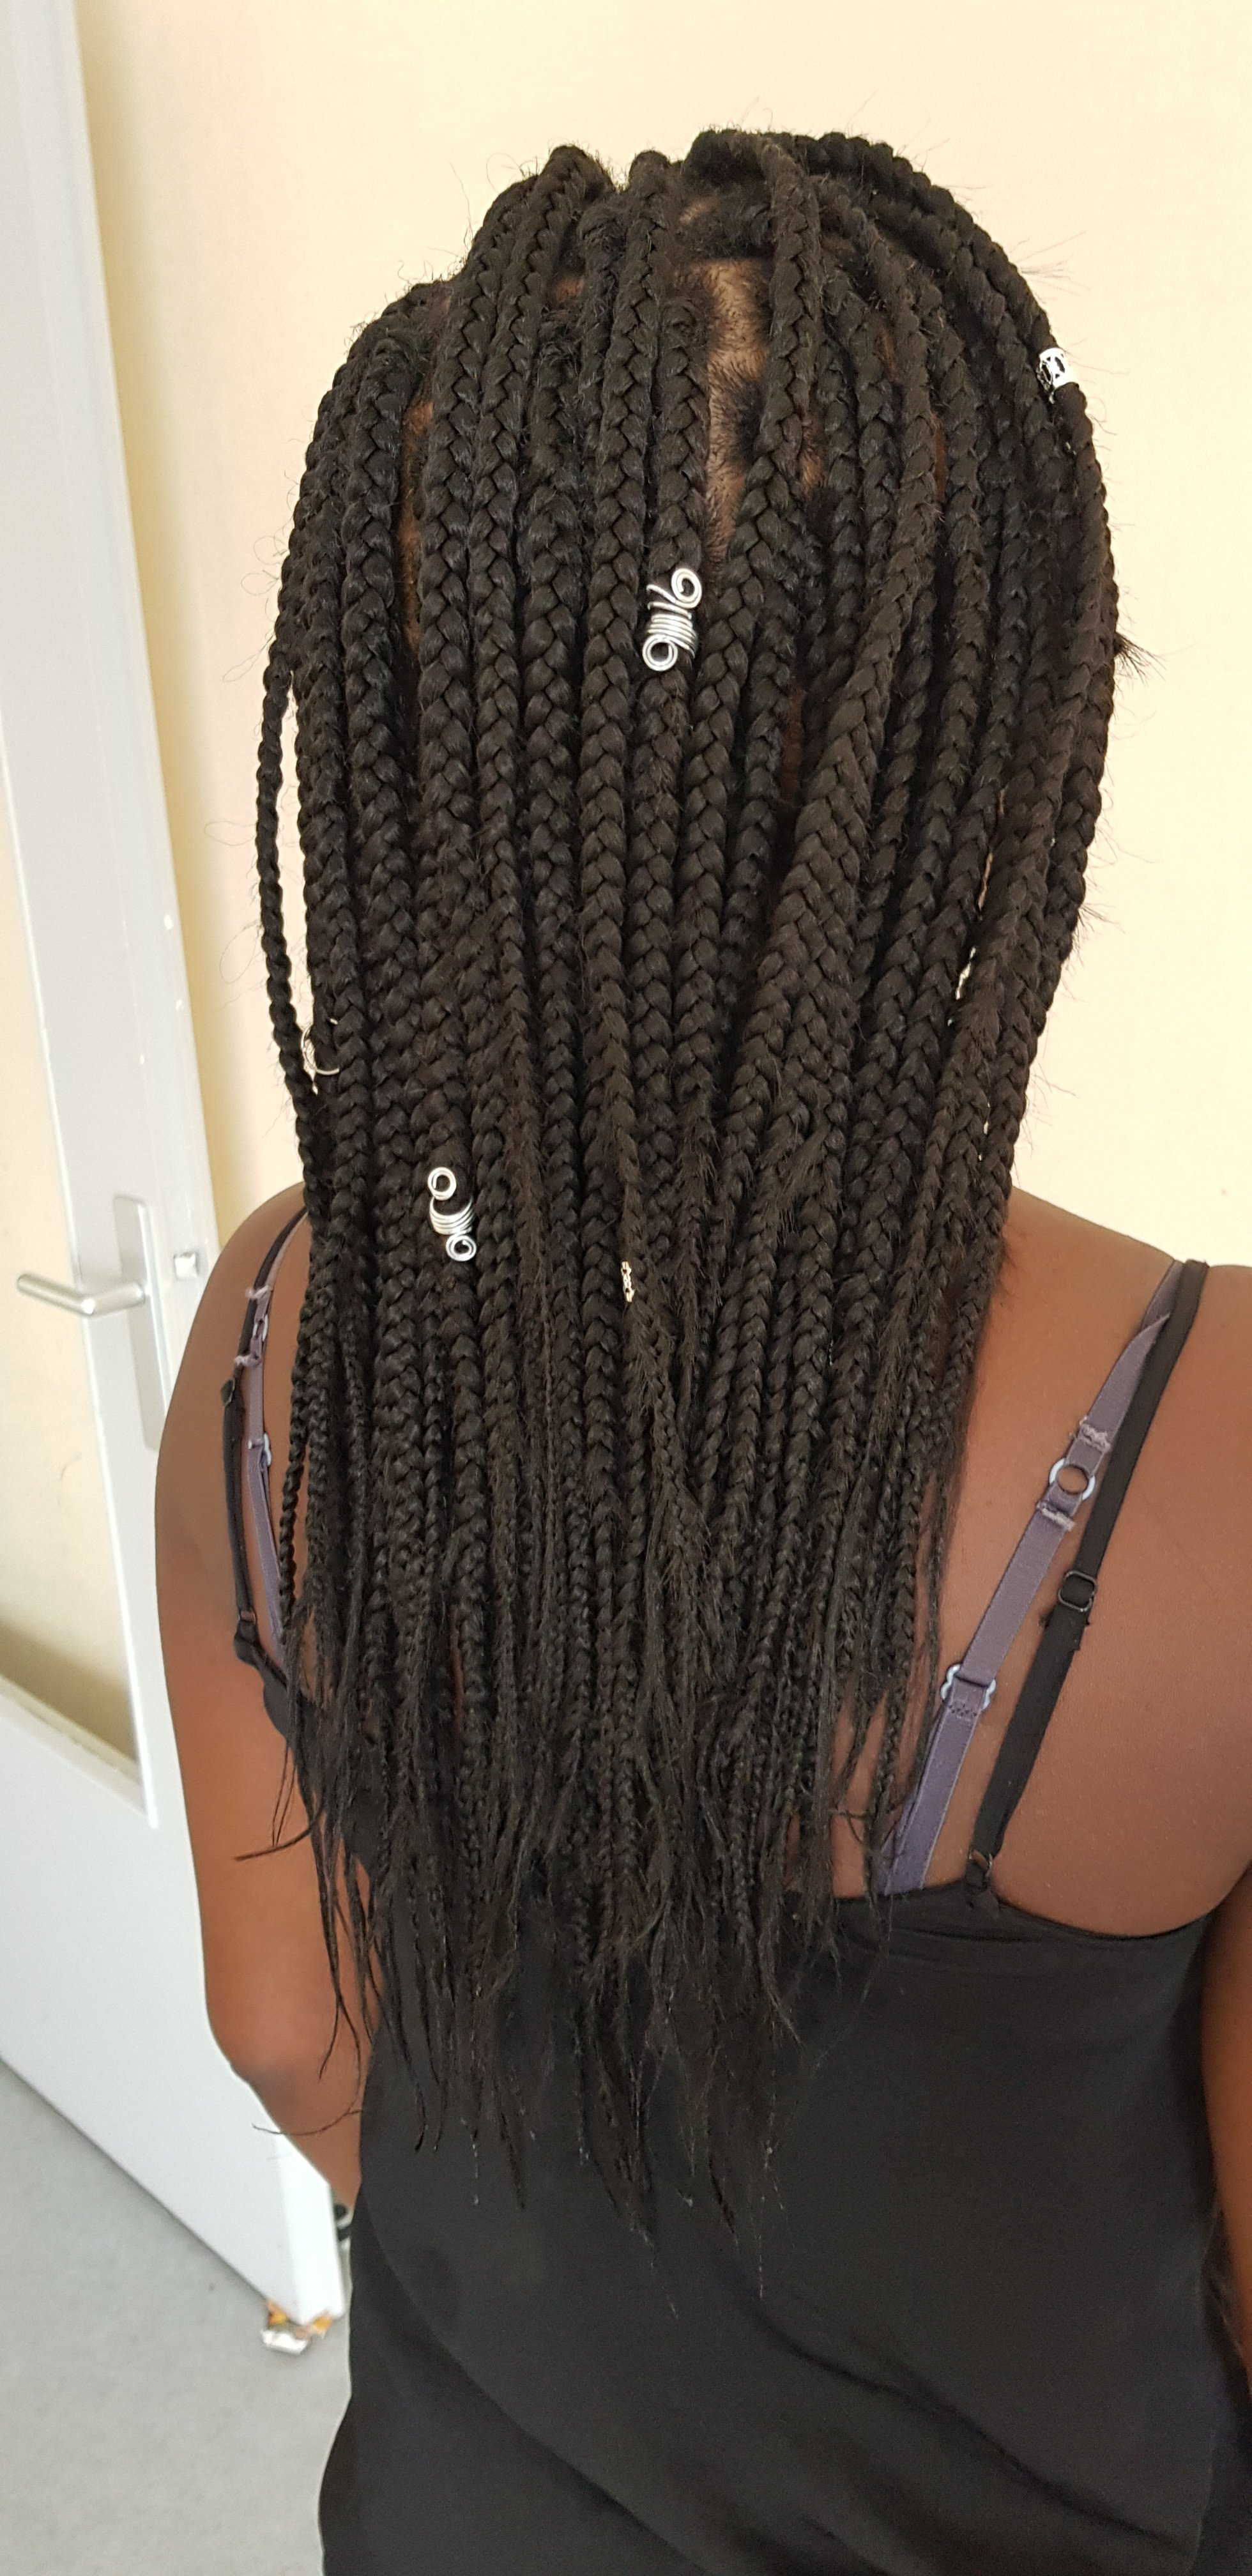 salon de coiffure afro tresse tresses box braids crochet braids vanilles tissages paris 75 77 78 91 92 93 94 95 JMFTDOTI